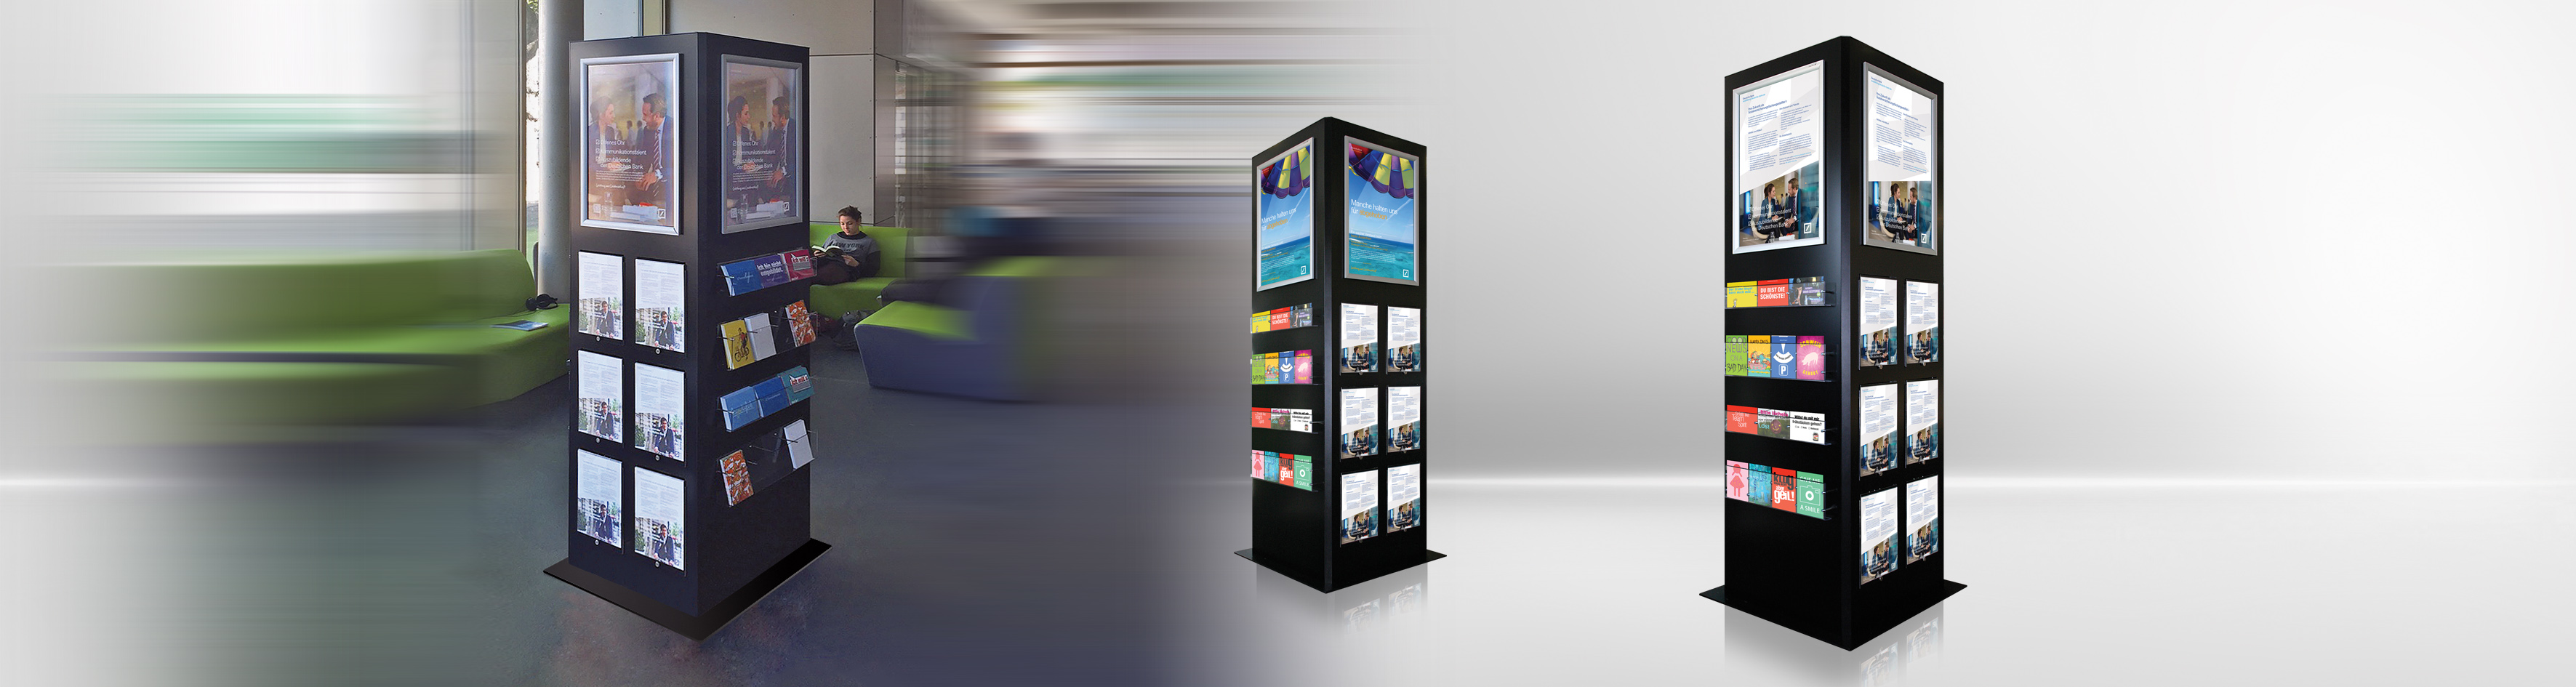 Digitales POS-Display